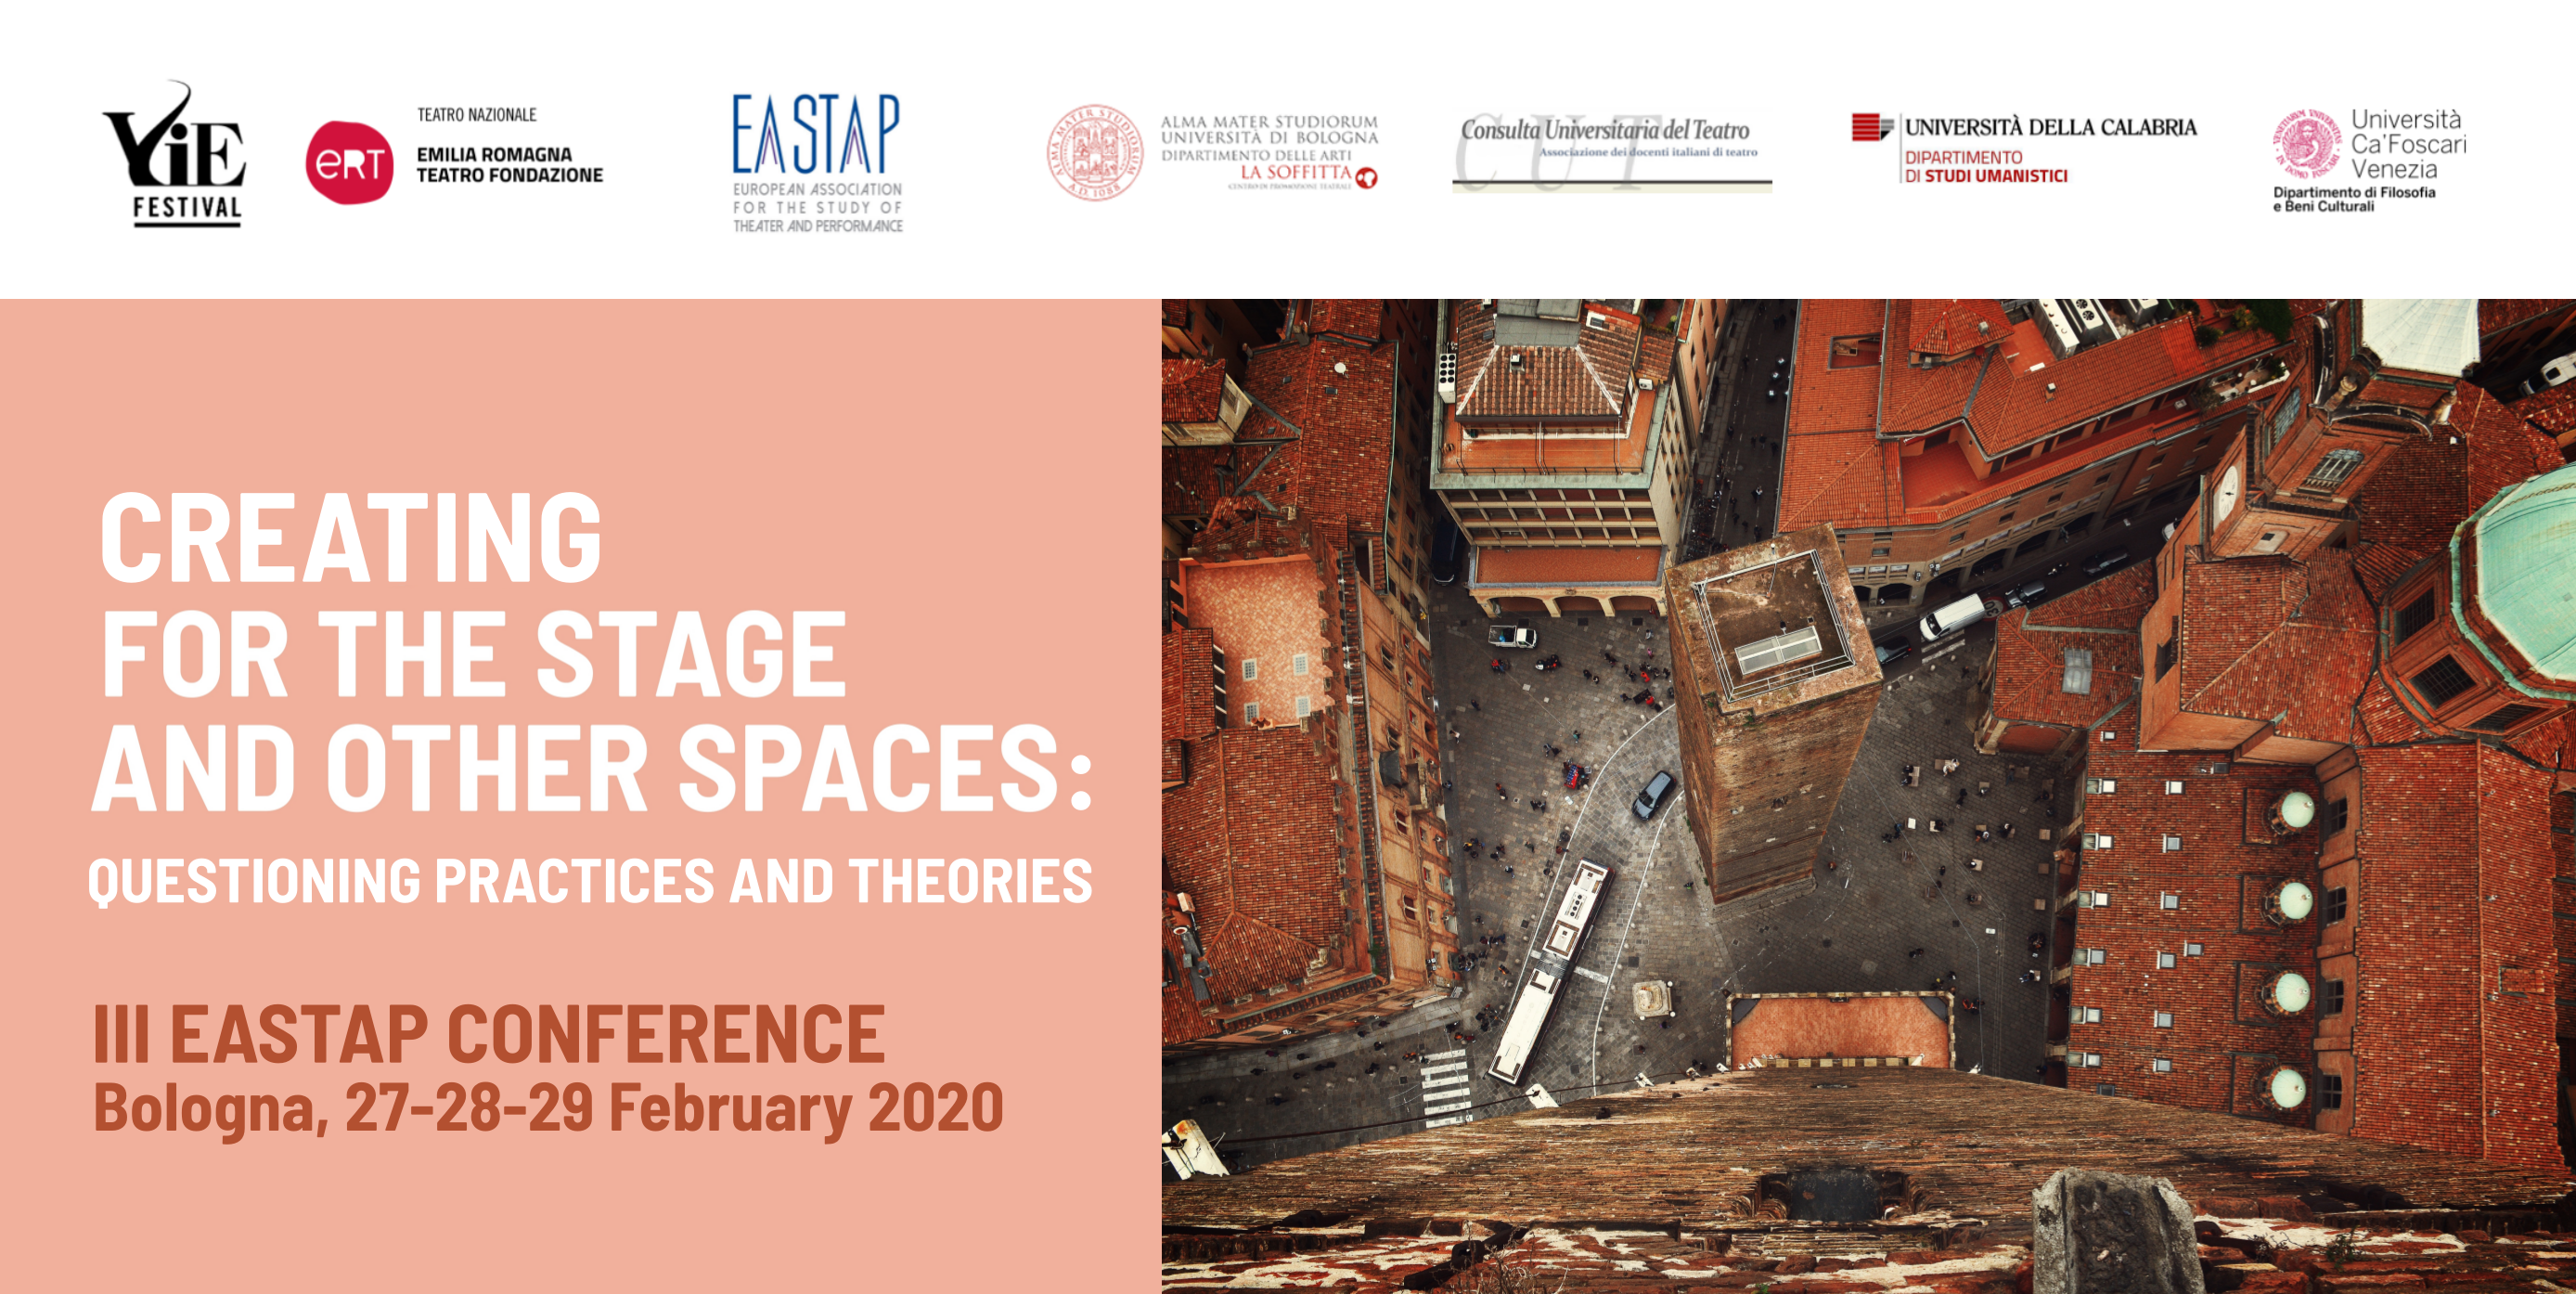 EASTAP III CONFERENCE IN BOLOGNA – FEBRUARY 27- MARCH 1, 2020